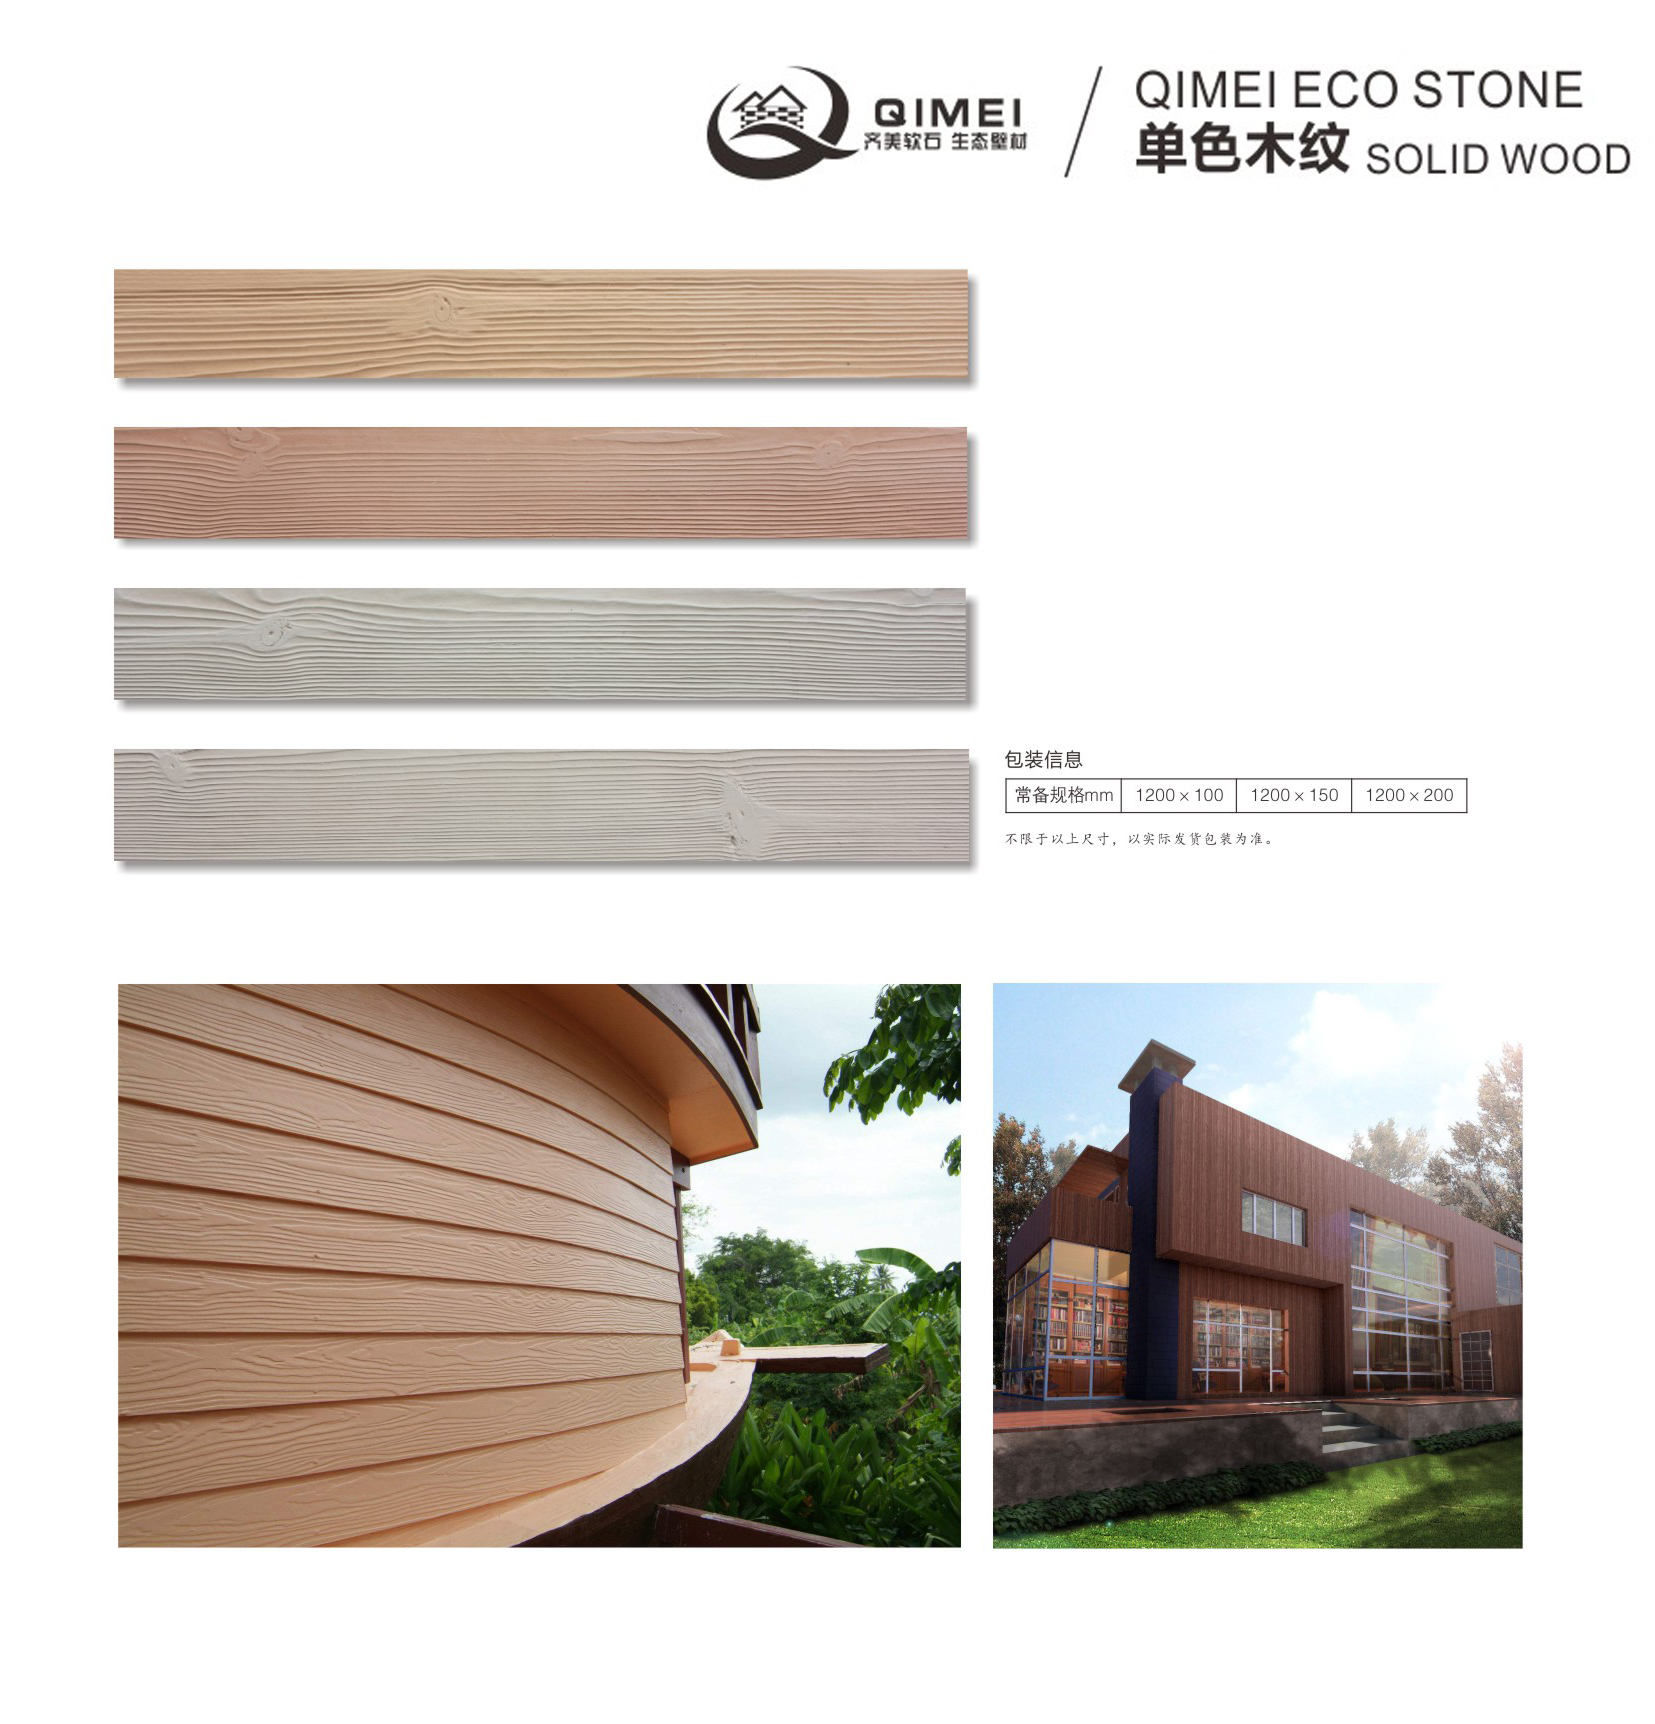 China baidai qimei wood grain style flexible and soft stone